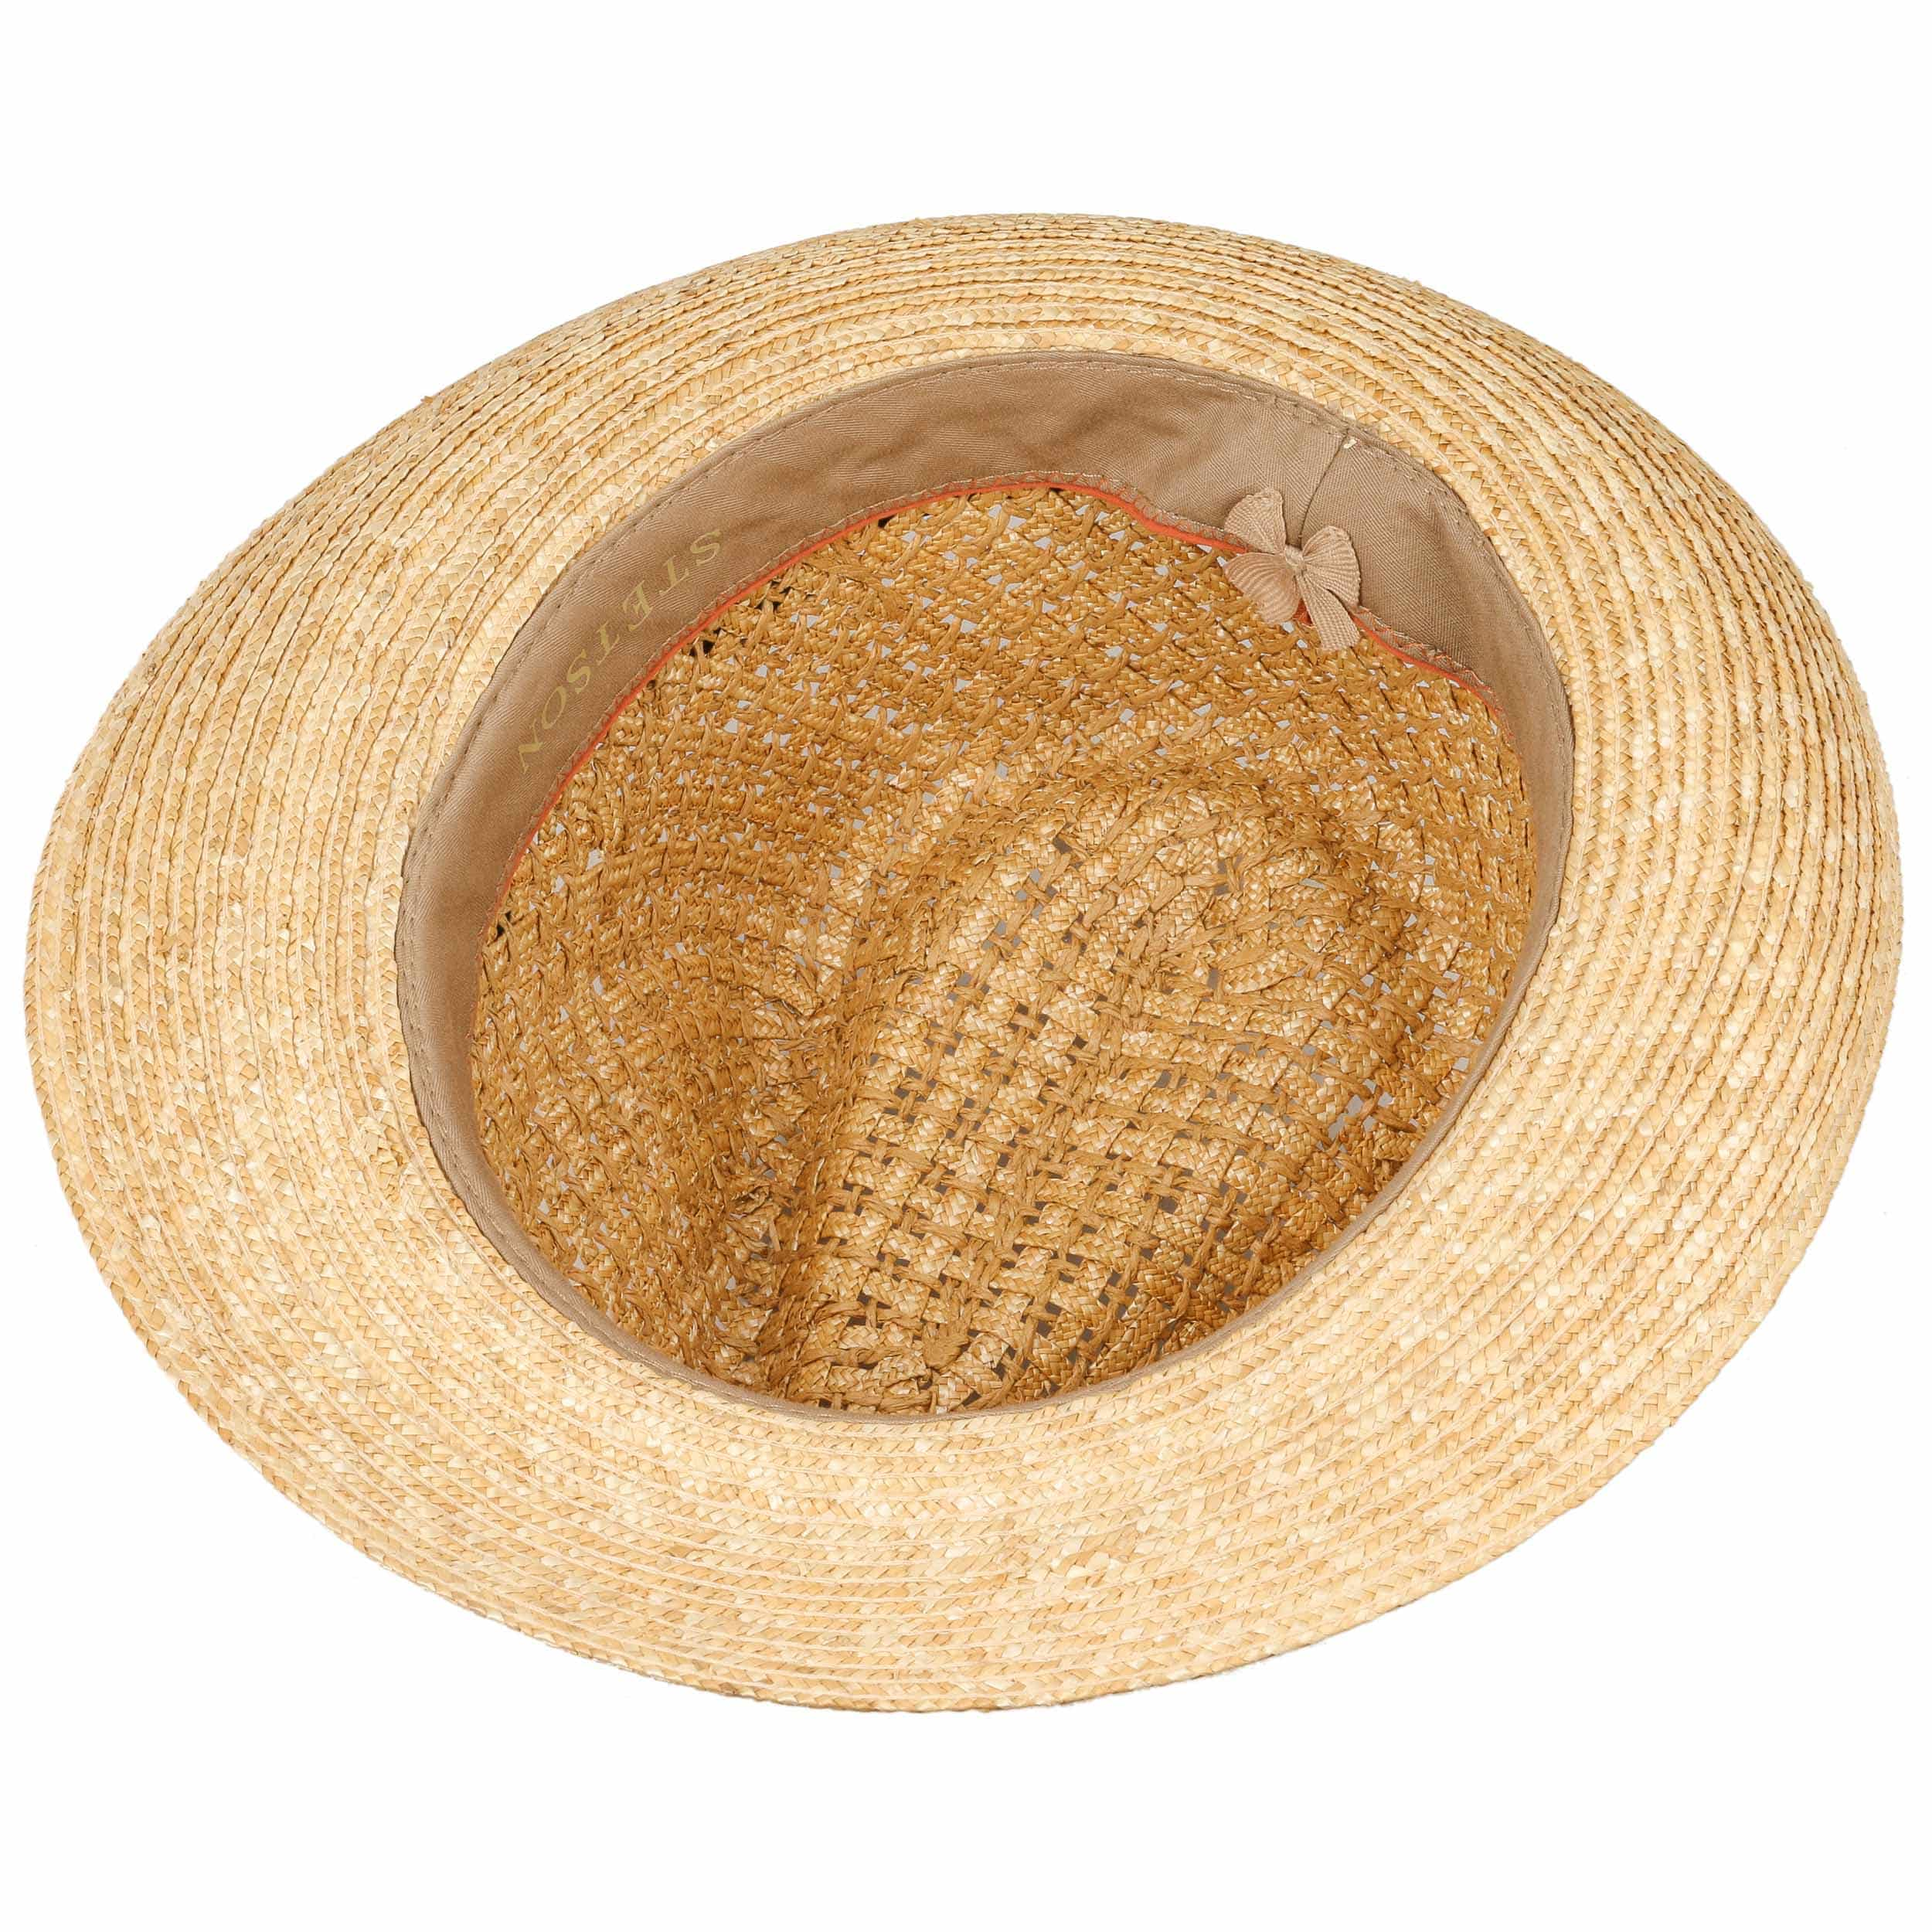 ... Bristow Trilby Straw Hat by Stetson - nature 3 ... ee497435f60f